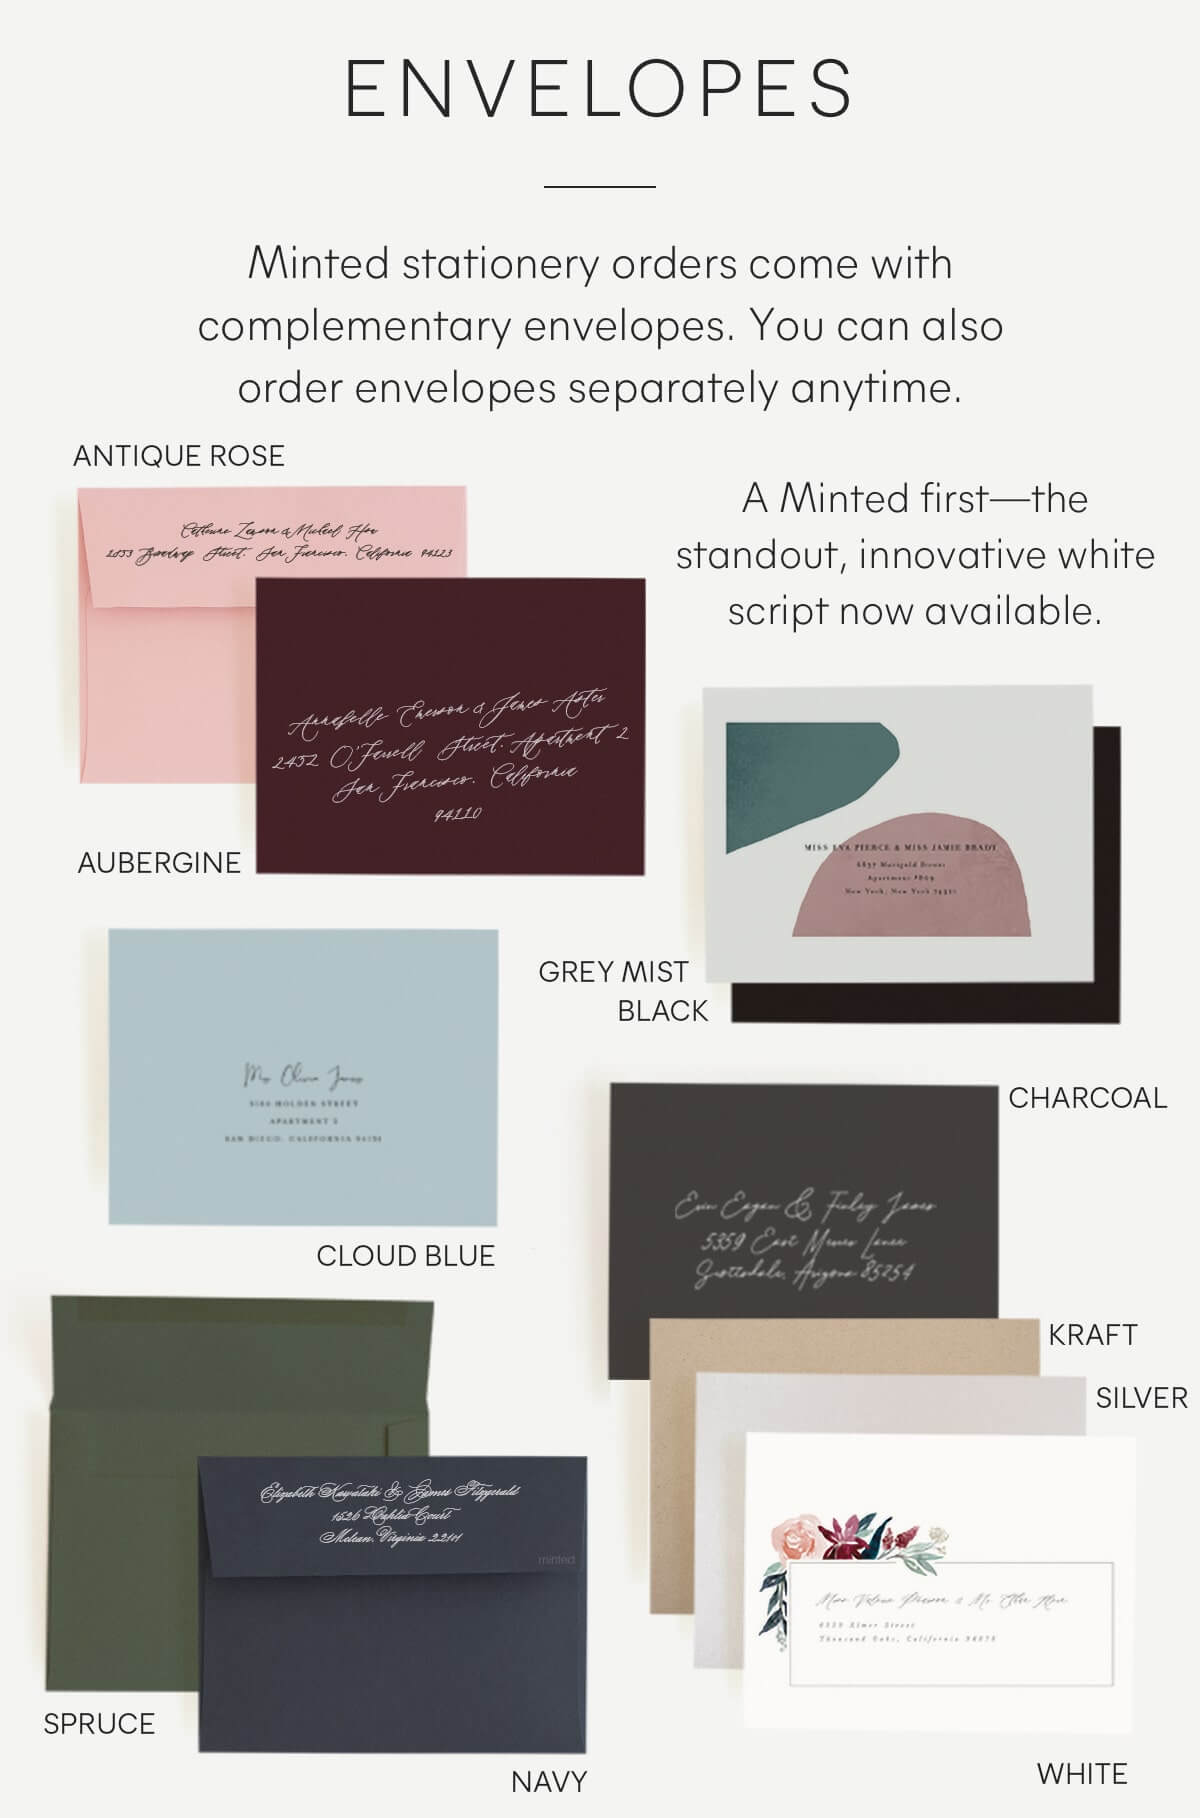 Minted Envelopes image